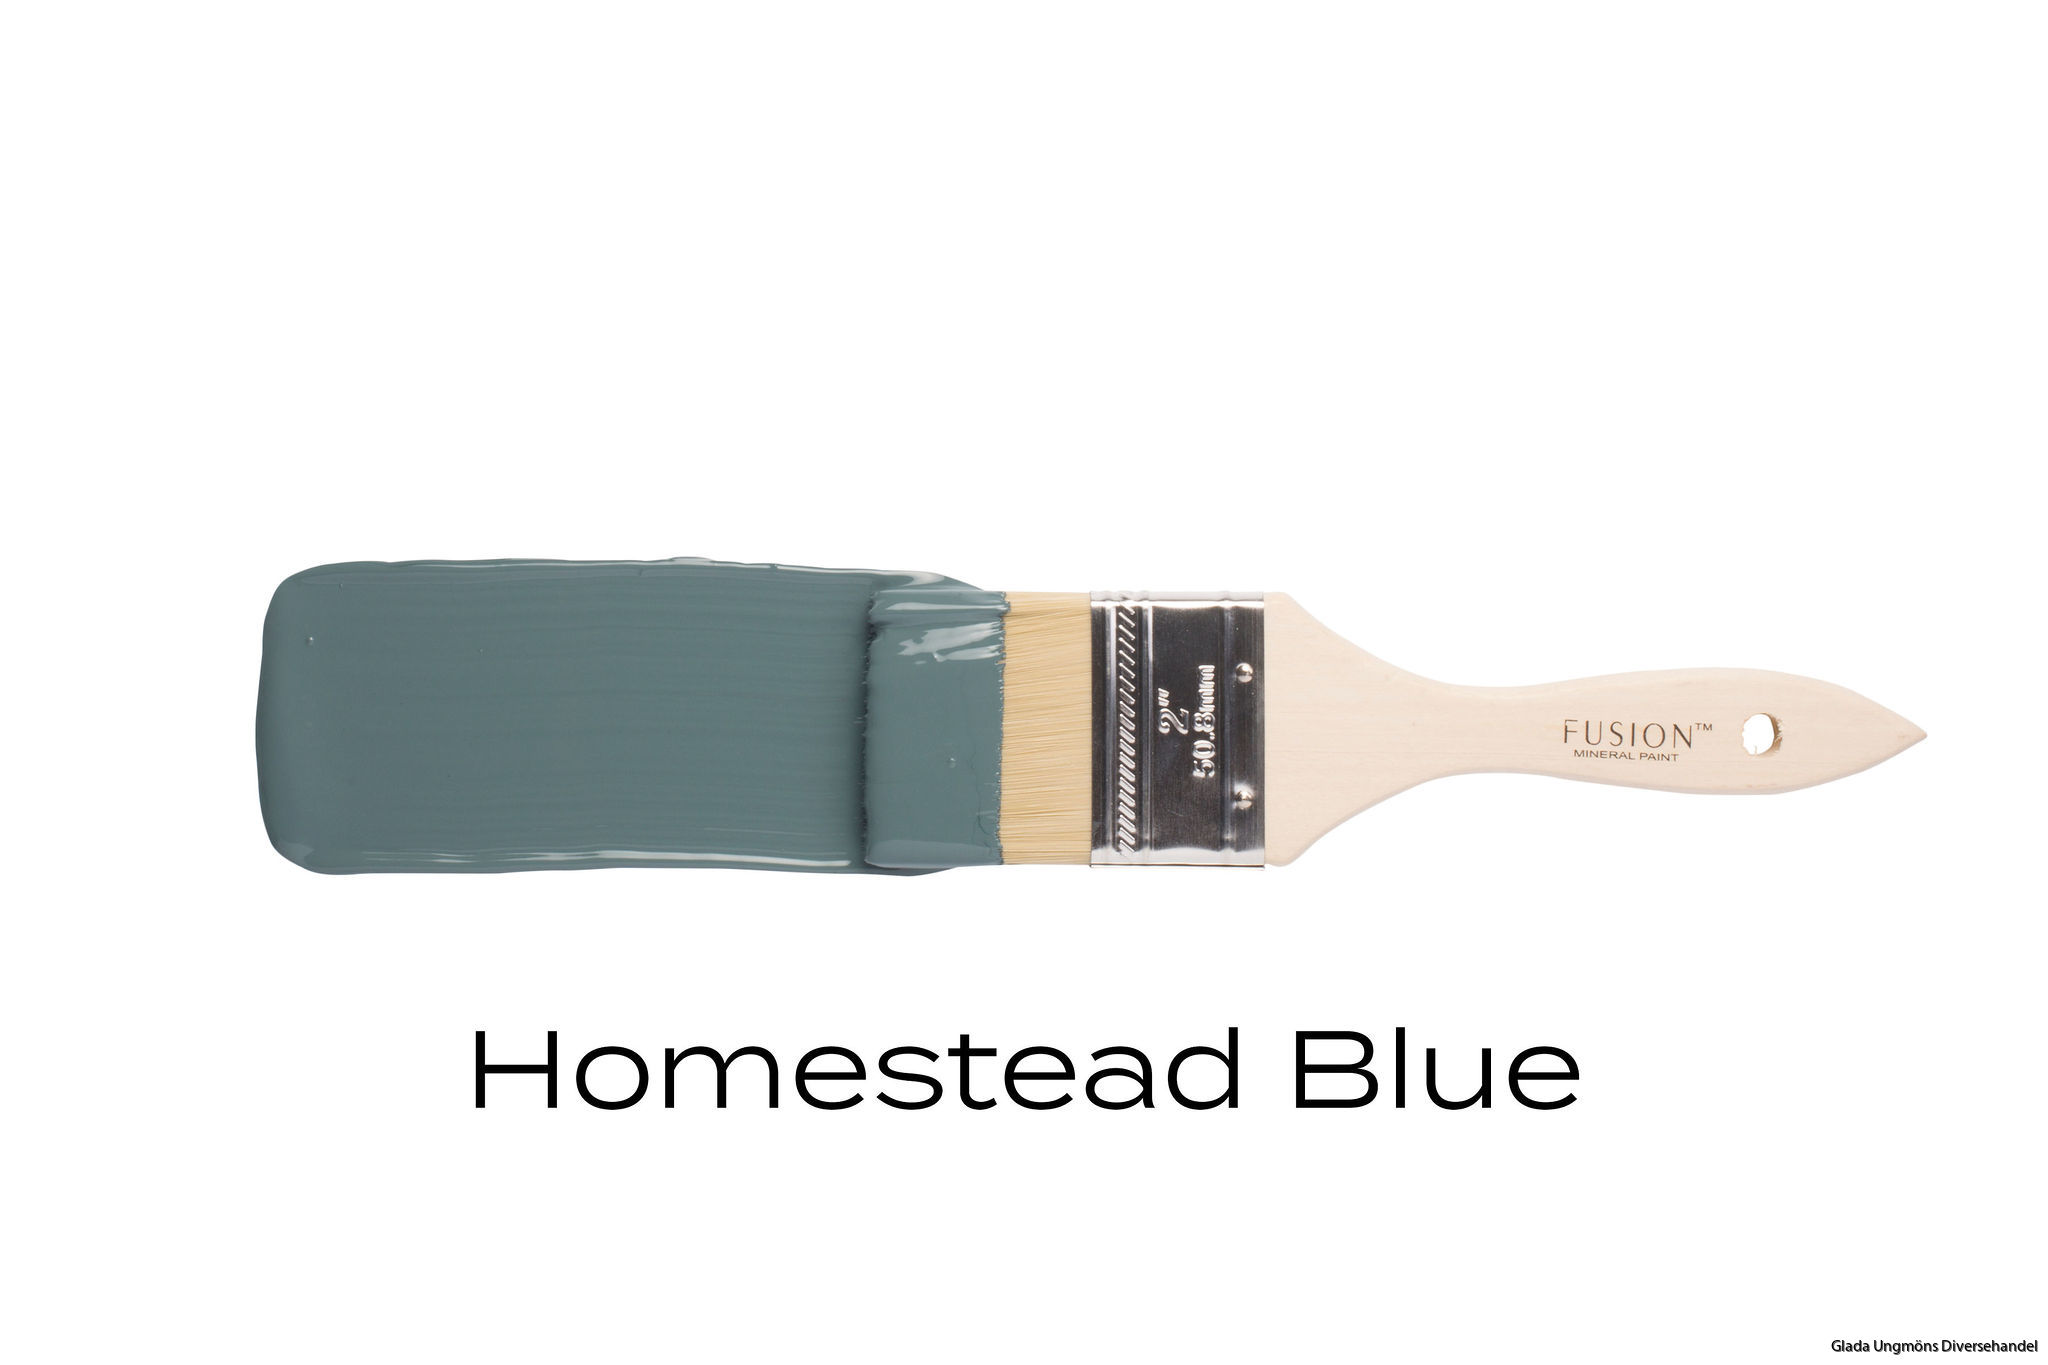 T3HOMESTEADBLUE